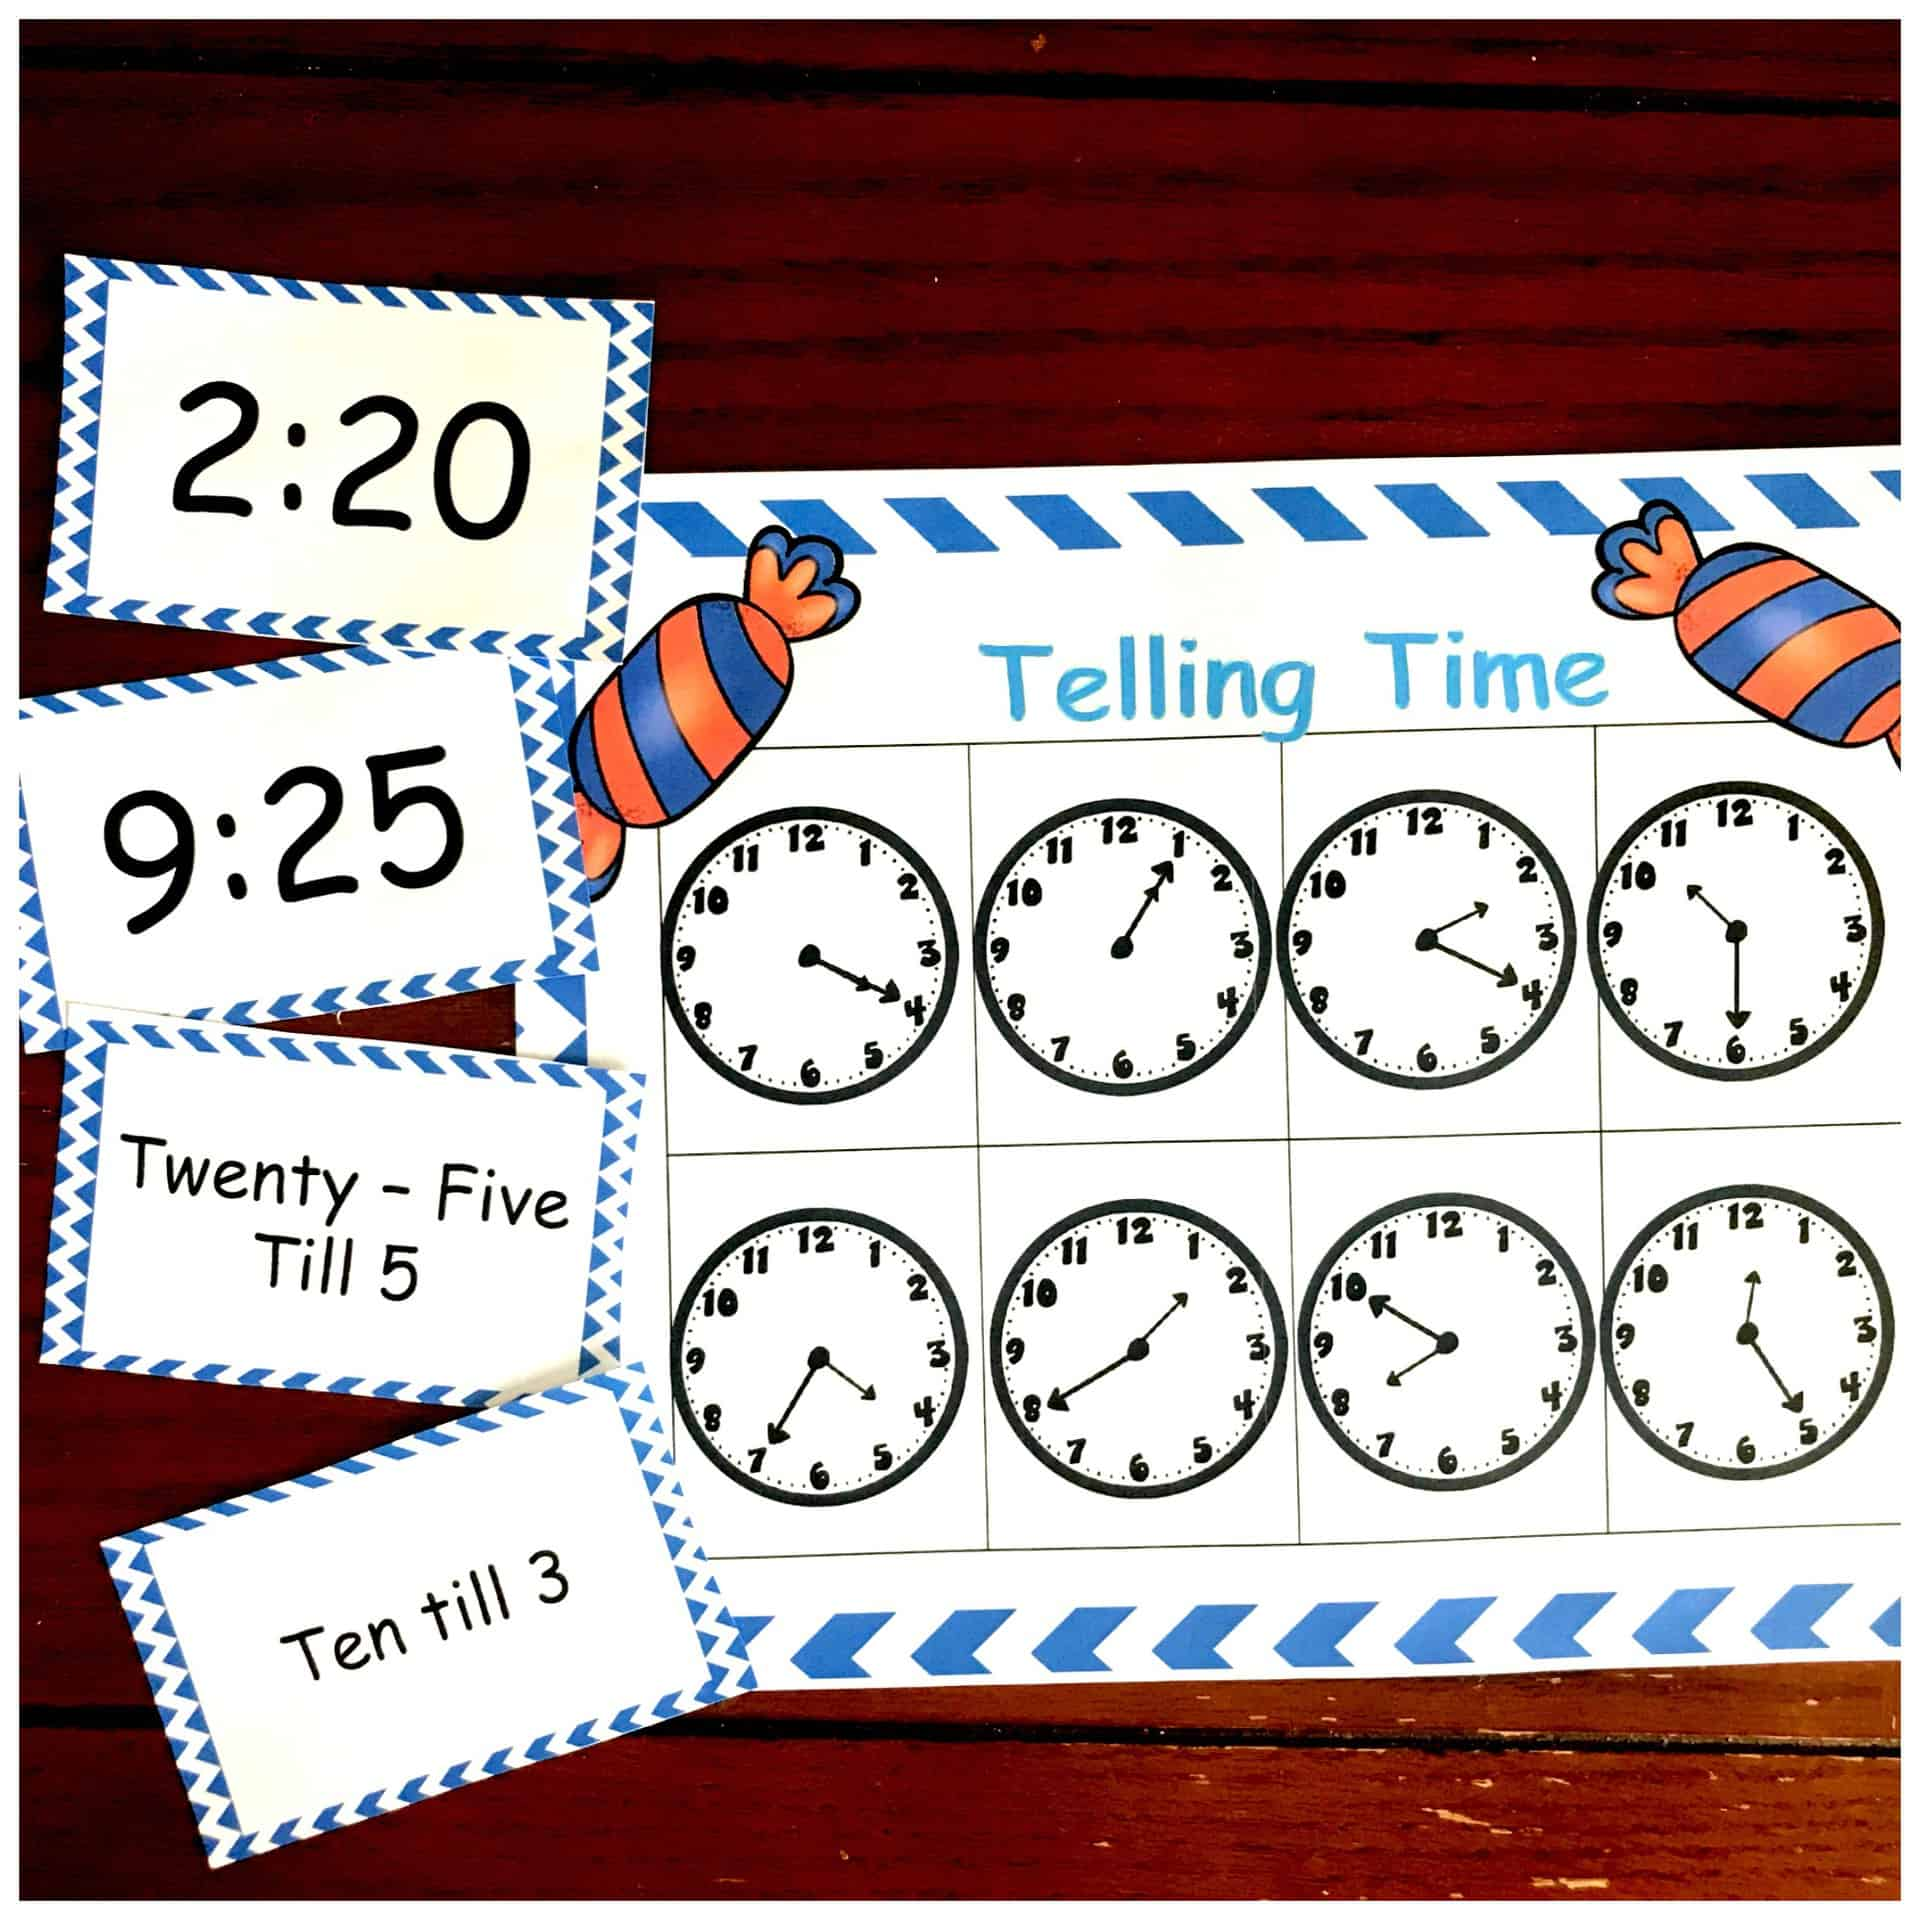 photo regarding Telling Time Printable Game named Cost-free Bingo Recreation Toward Teach Telling Year For Little ones